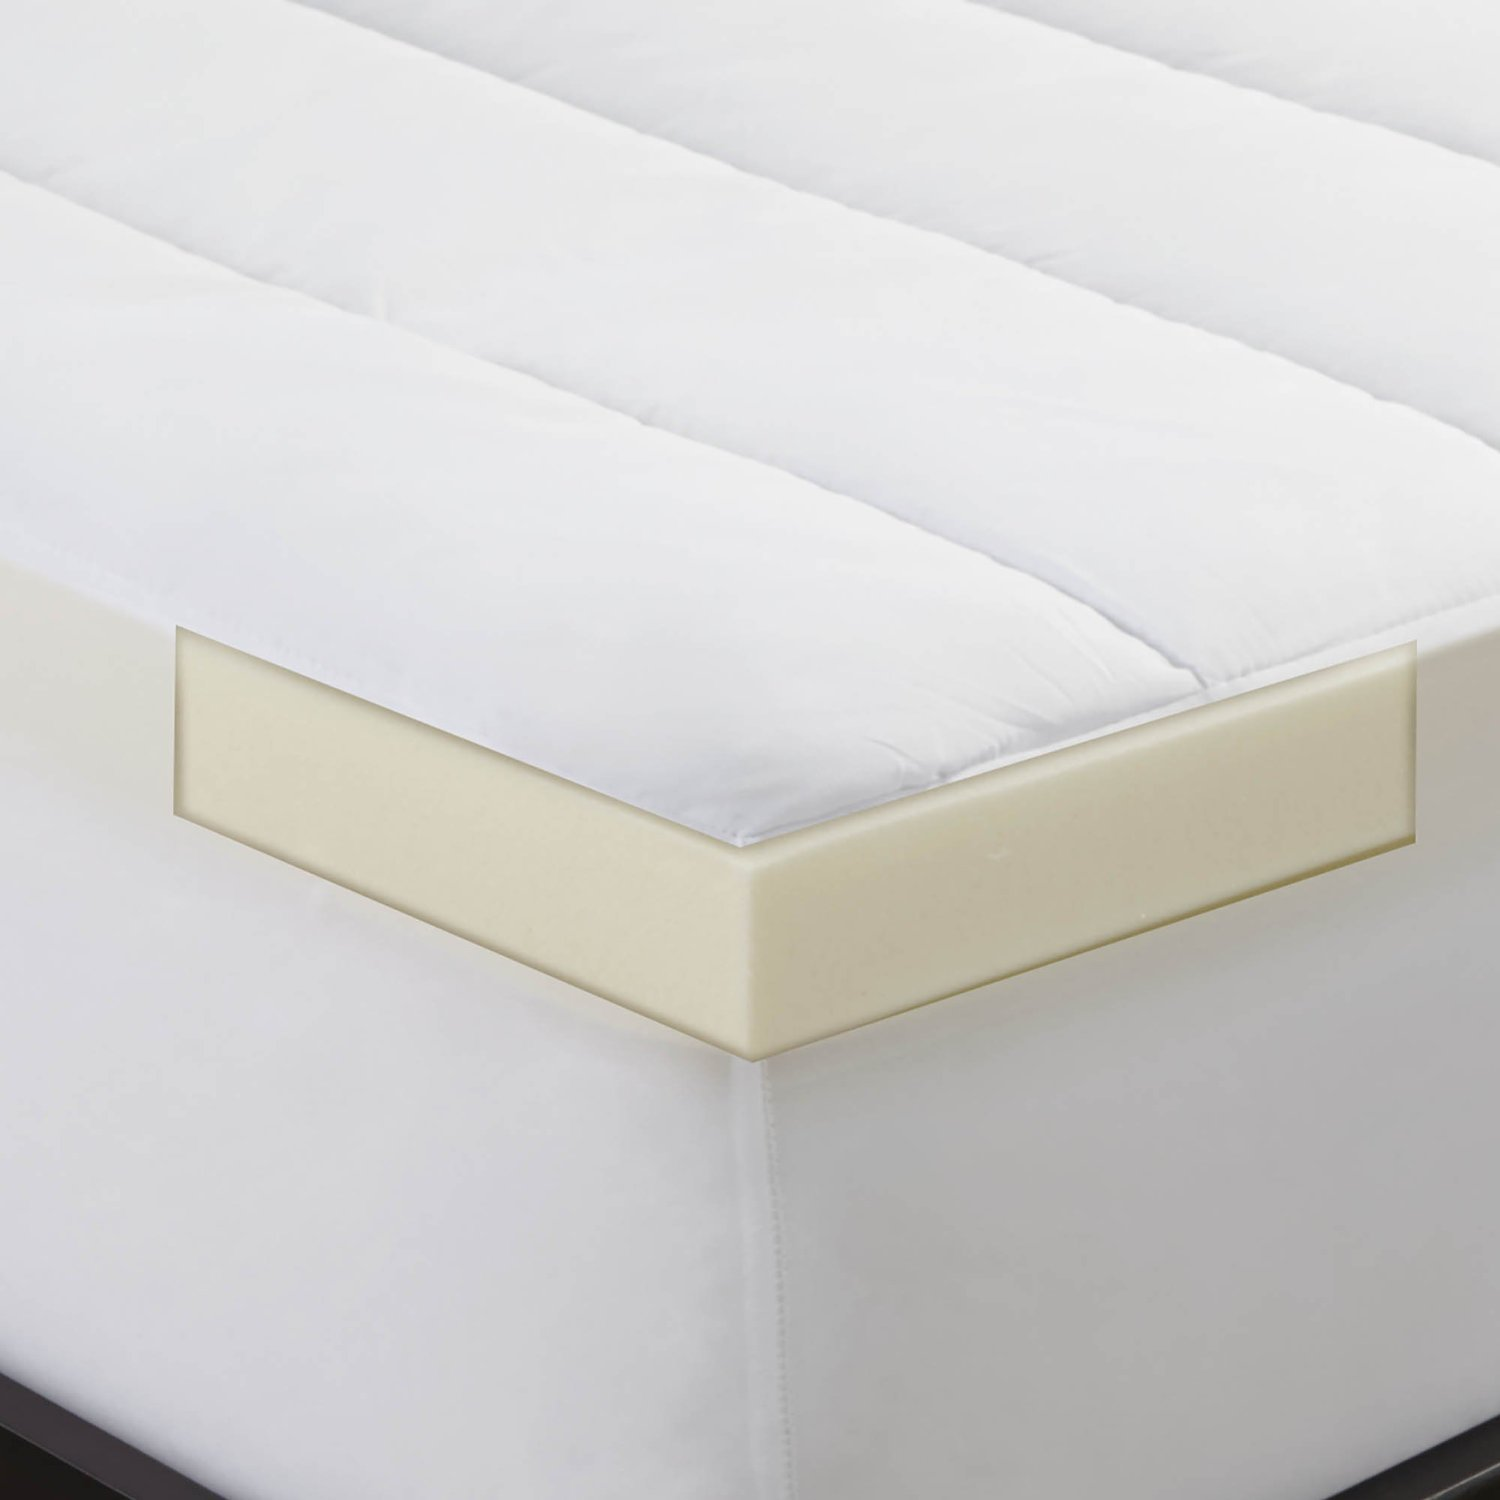 twin xl combo set 2 memory foam bed topper w waterproof mattress pad dorm size ebay. Black Bedroom Furniture Sets. Home Design Ideas